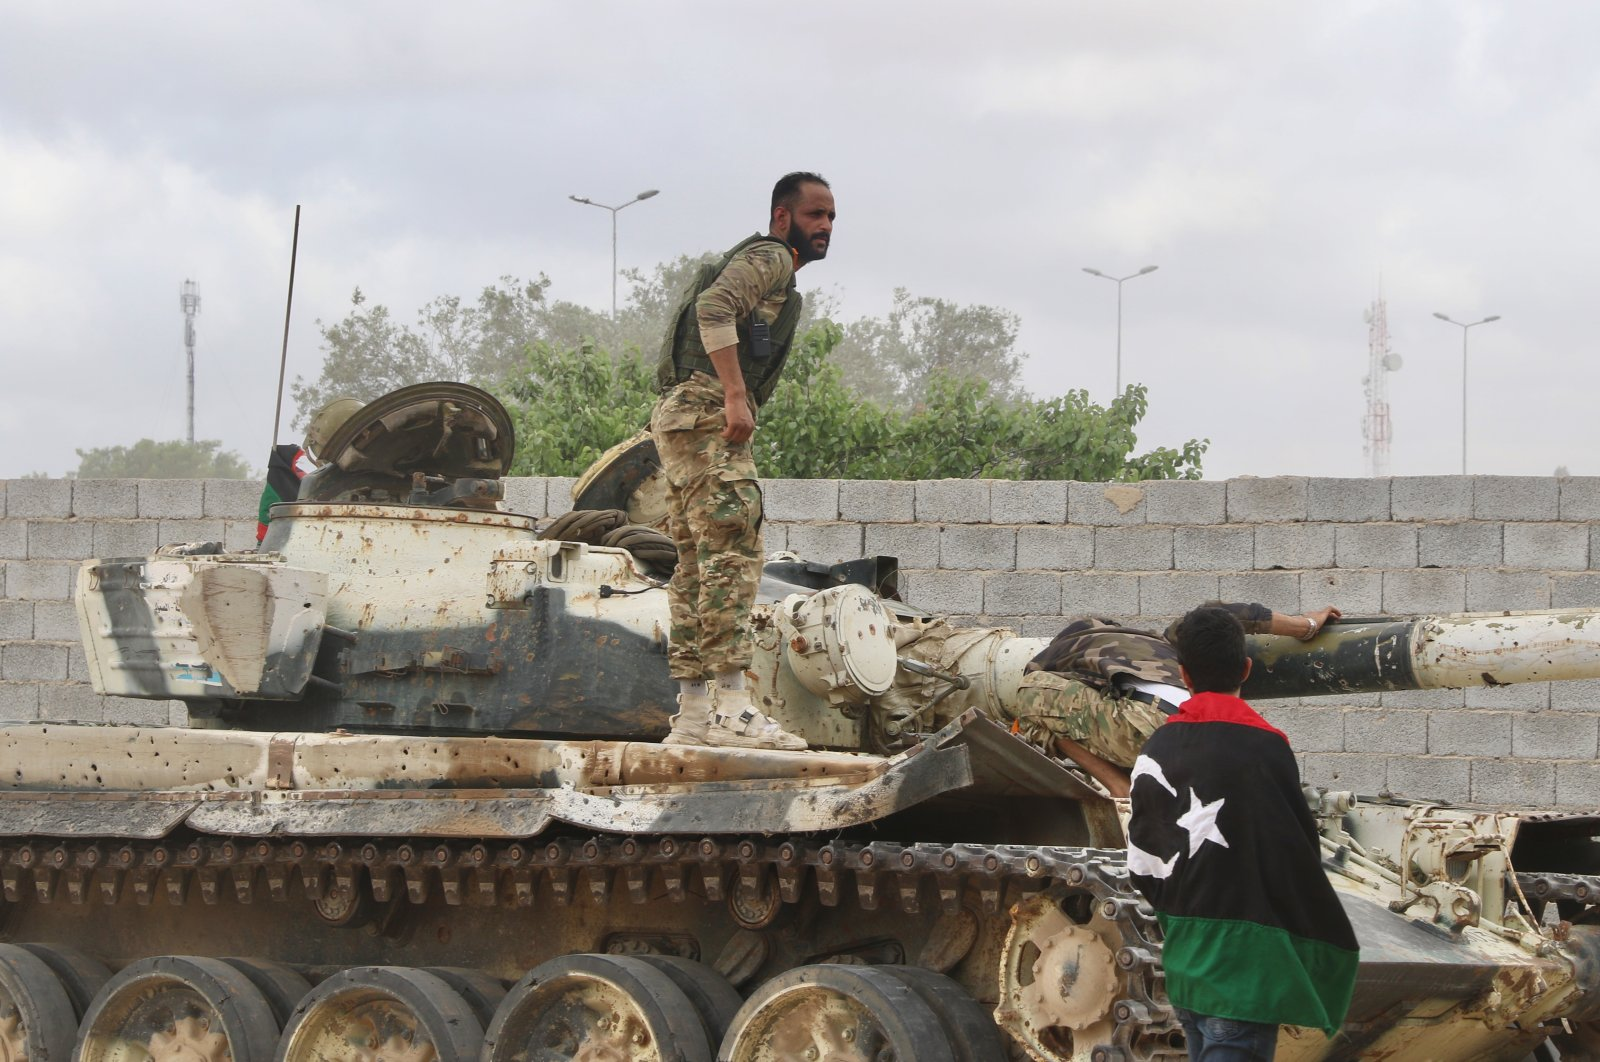 Forces loyal to the U.N.-recognized Government of National Accord (GNA) launch a military operation against putschist Gen. Khalifa Haftar's forces southeast of the capital Tripoli, Libya, April 23, 2020. (AA Photo)